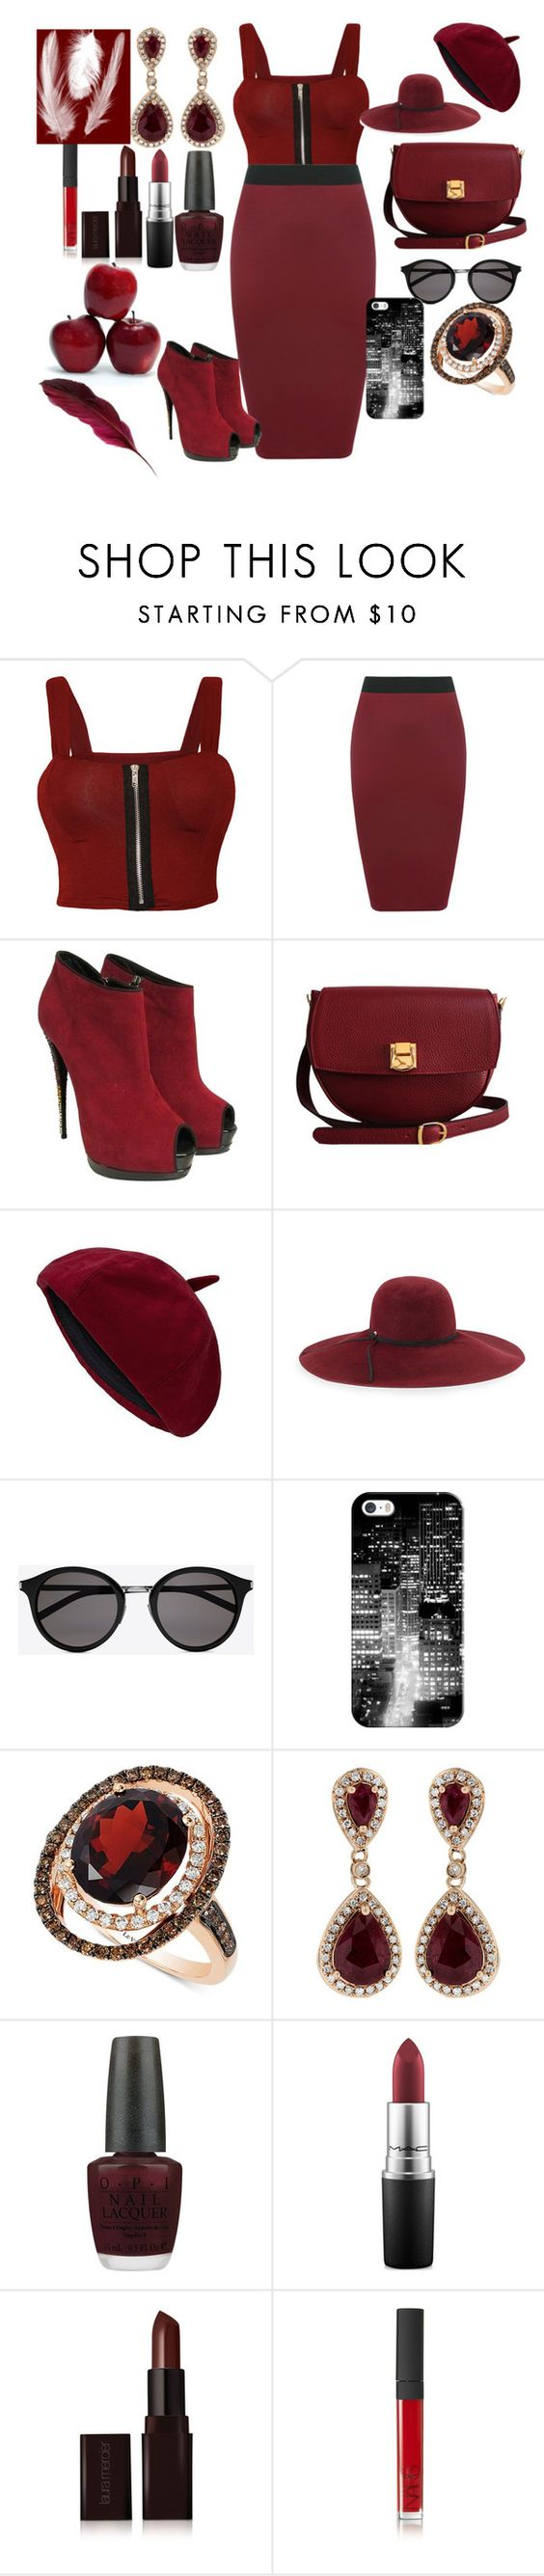 """Untitled #467"" by moniquedawson09123 ❤ liked on Polyvore featuring WearAll, Giuseppe Zanotti, The Code, Inverni, Yves Saint Laurent, Casetify, LE VIAN, Effy Jewelry, OPI and MAC Cosmetics"